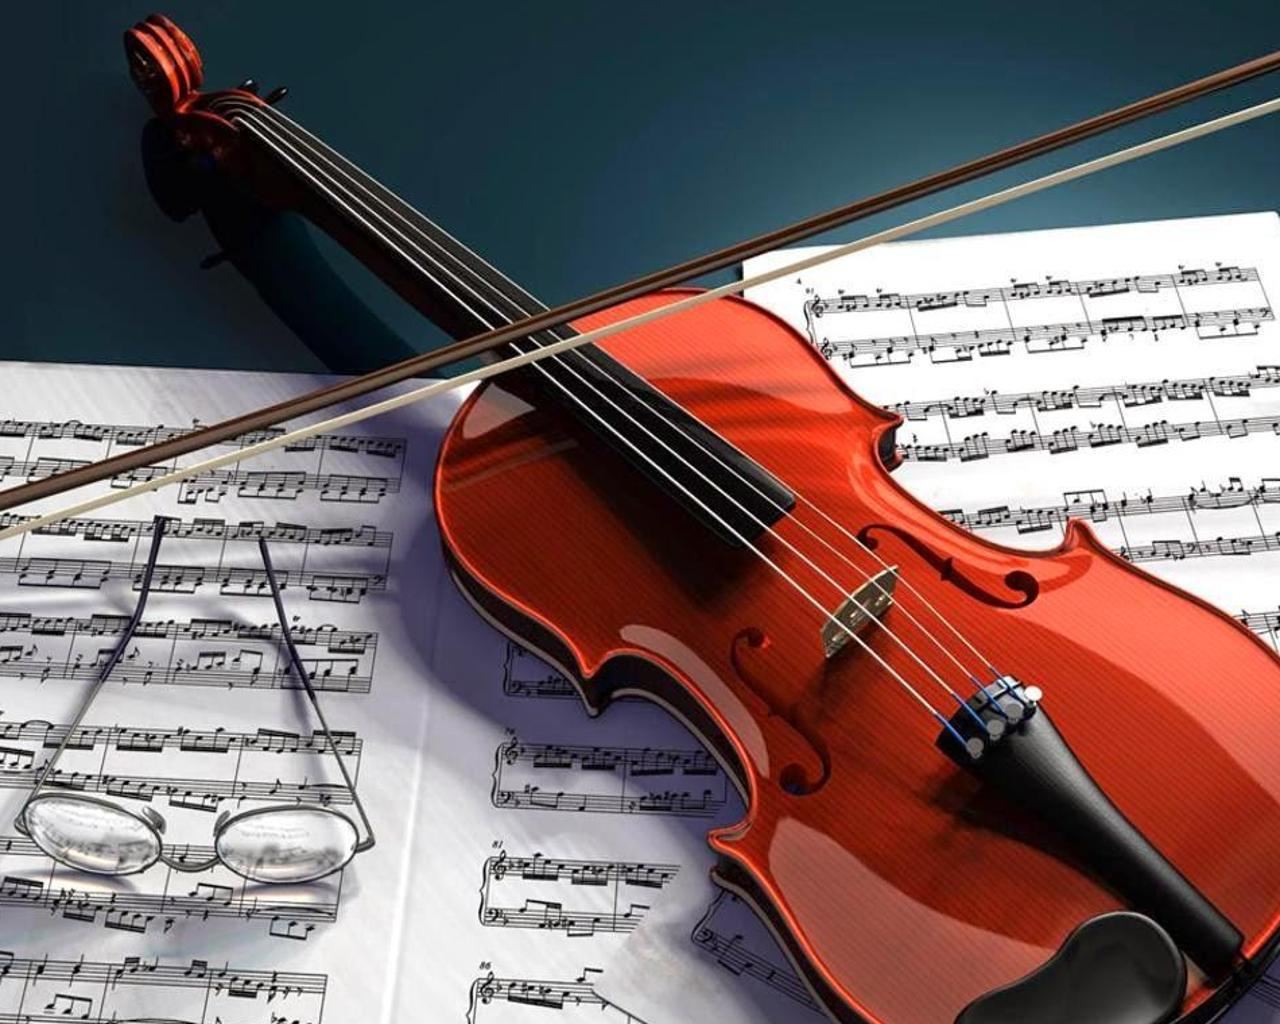 Wallpapers Violin for Android - APK Download